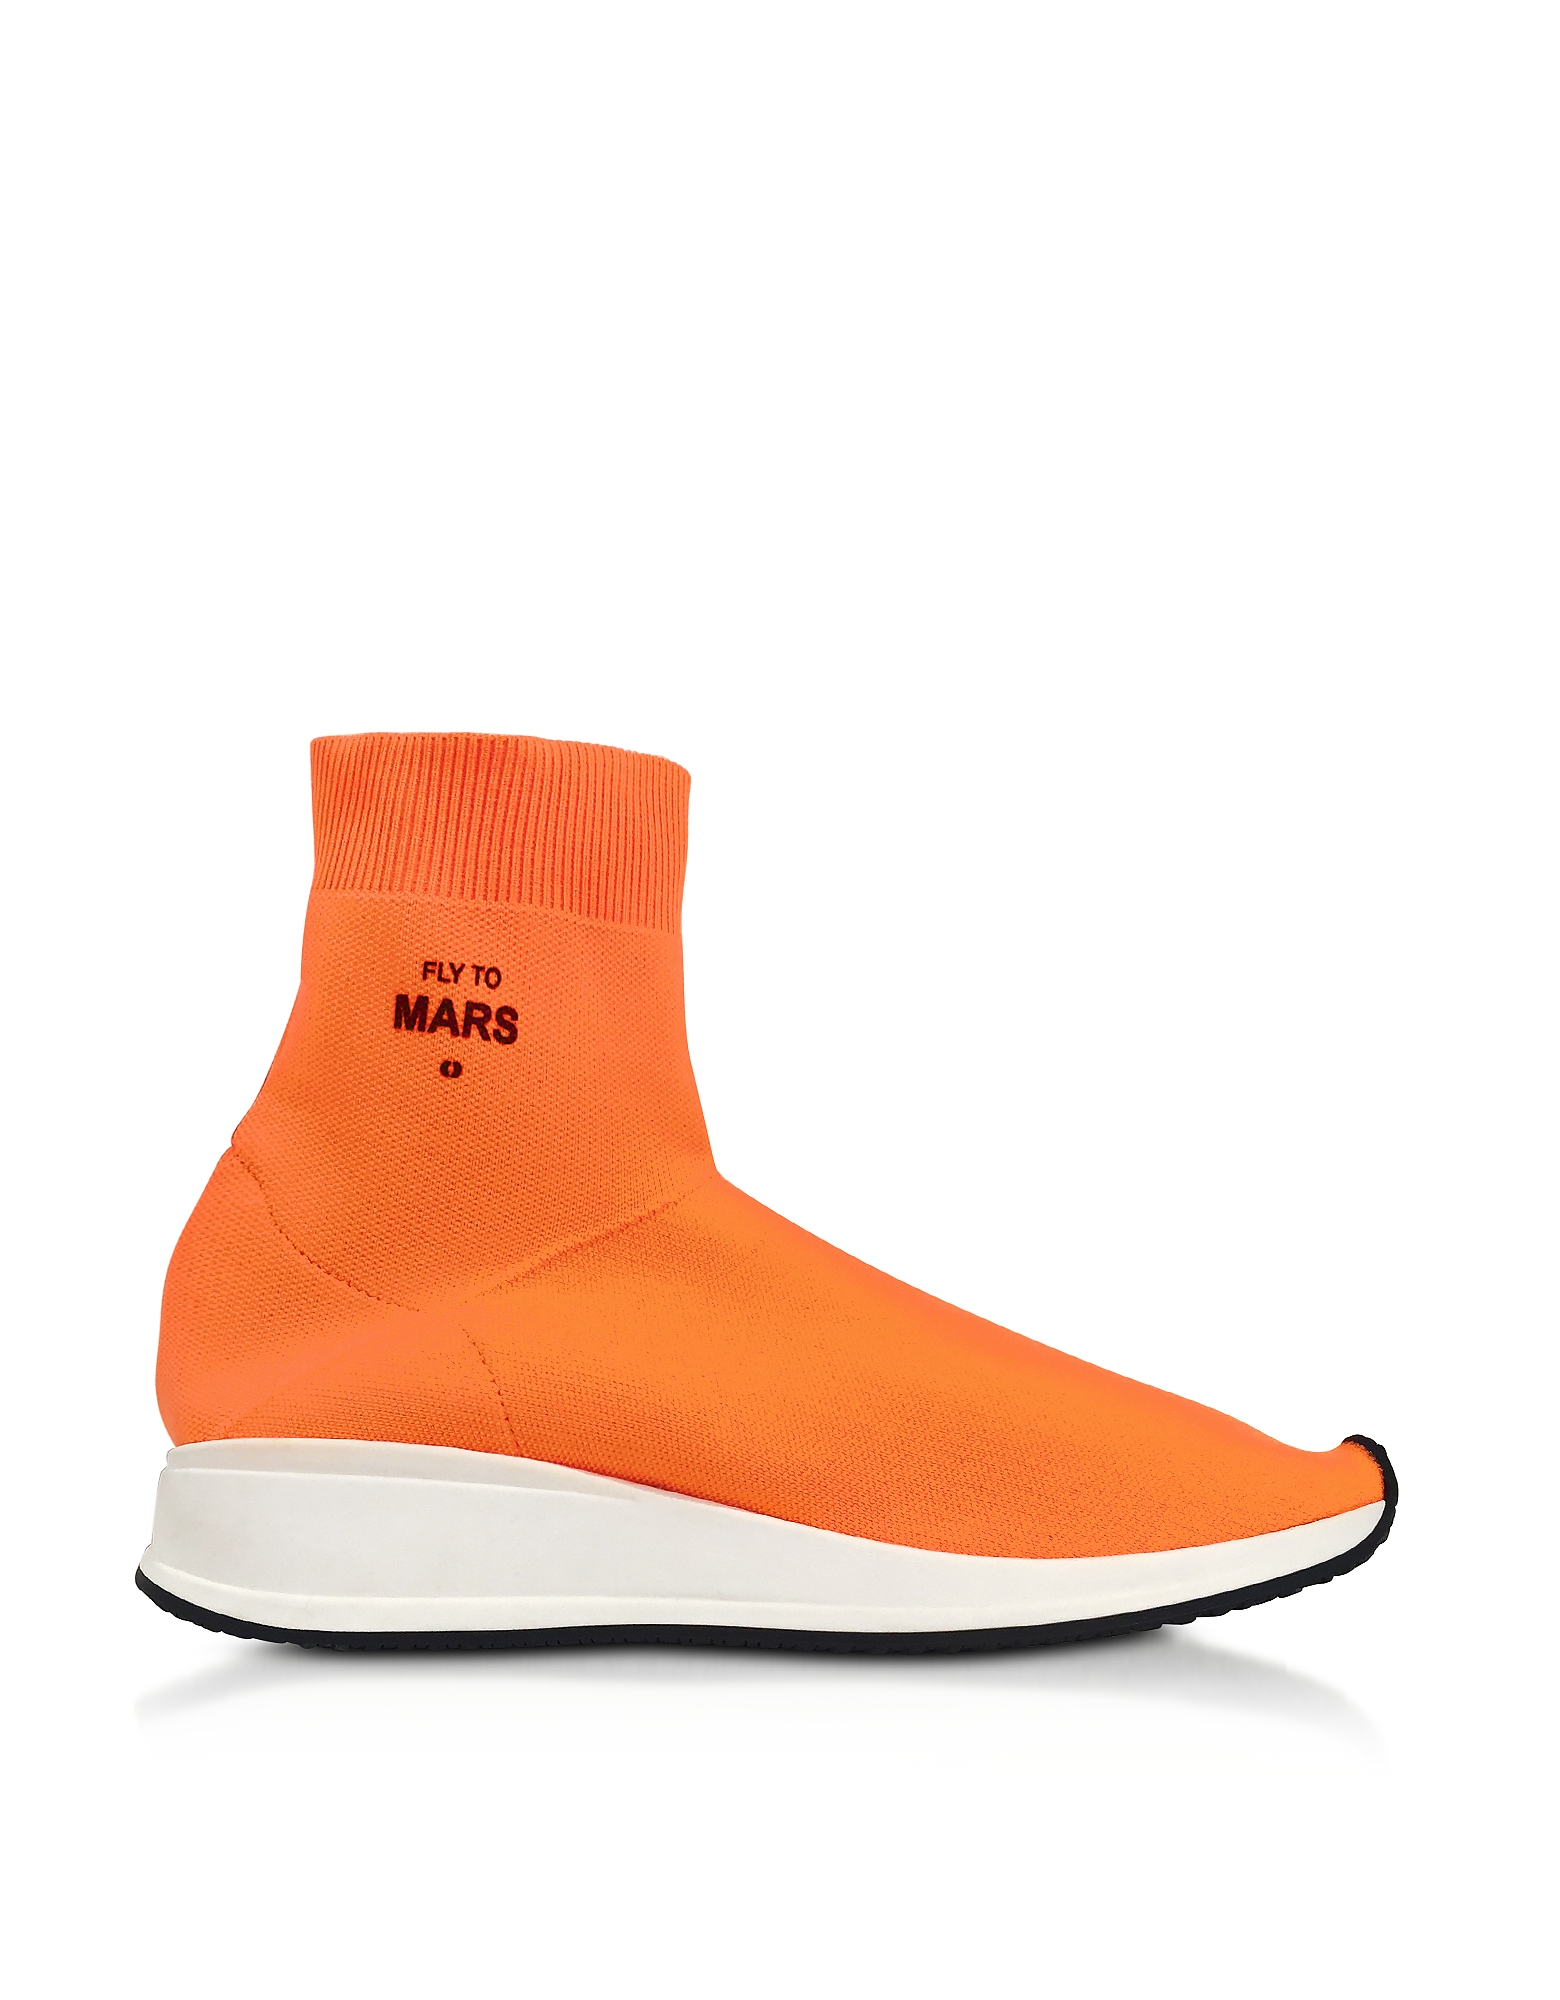 Joshua Sanders Shoes, Fly To Mars Neon Orange Nylon Sock Sneakers